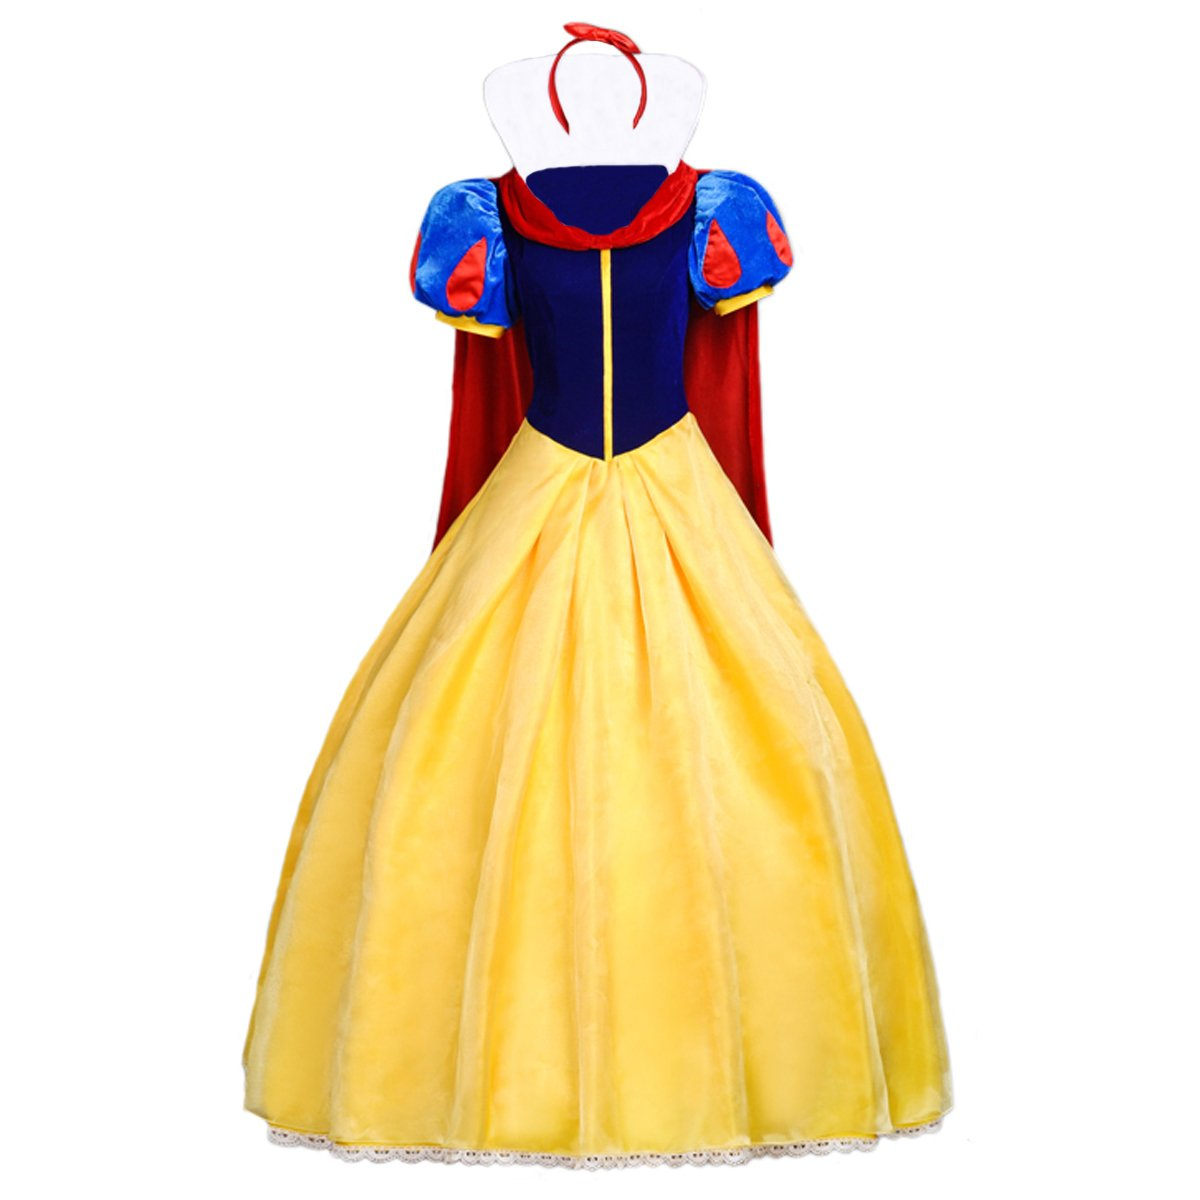 Angelaicos Womens Princess Costume Dress Cloak Headband (M, Yellow Red)